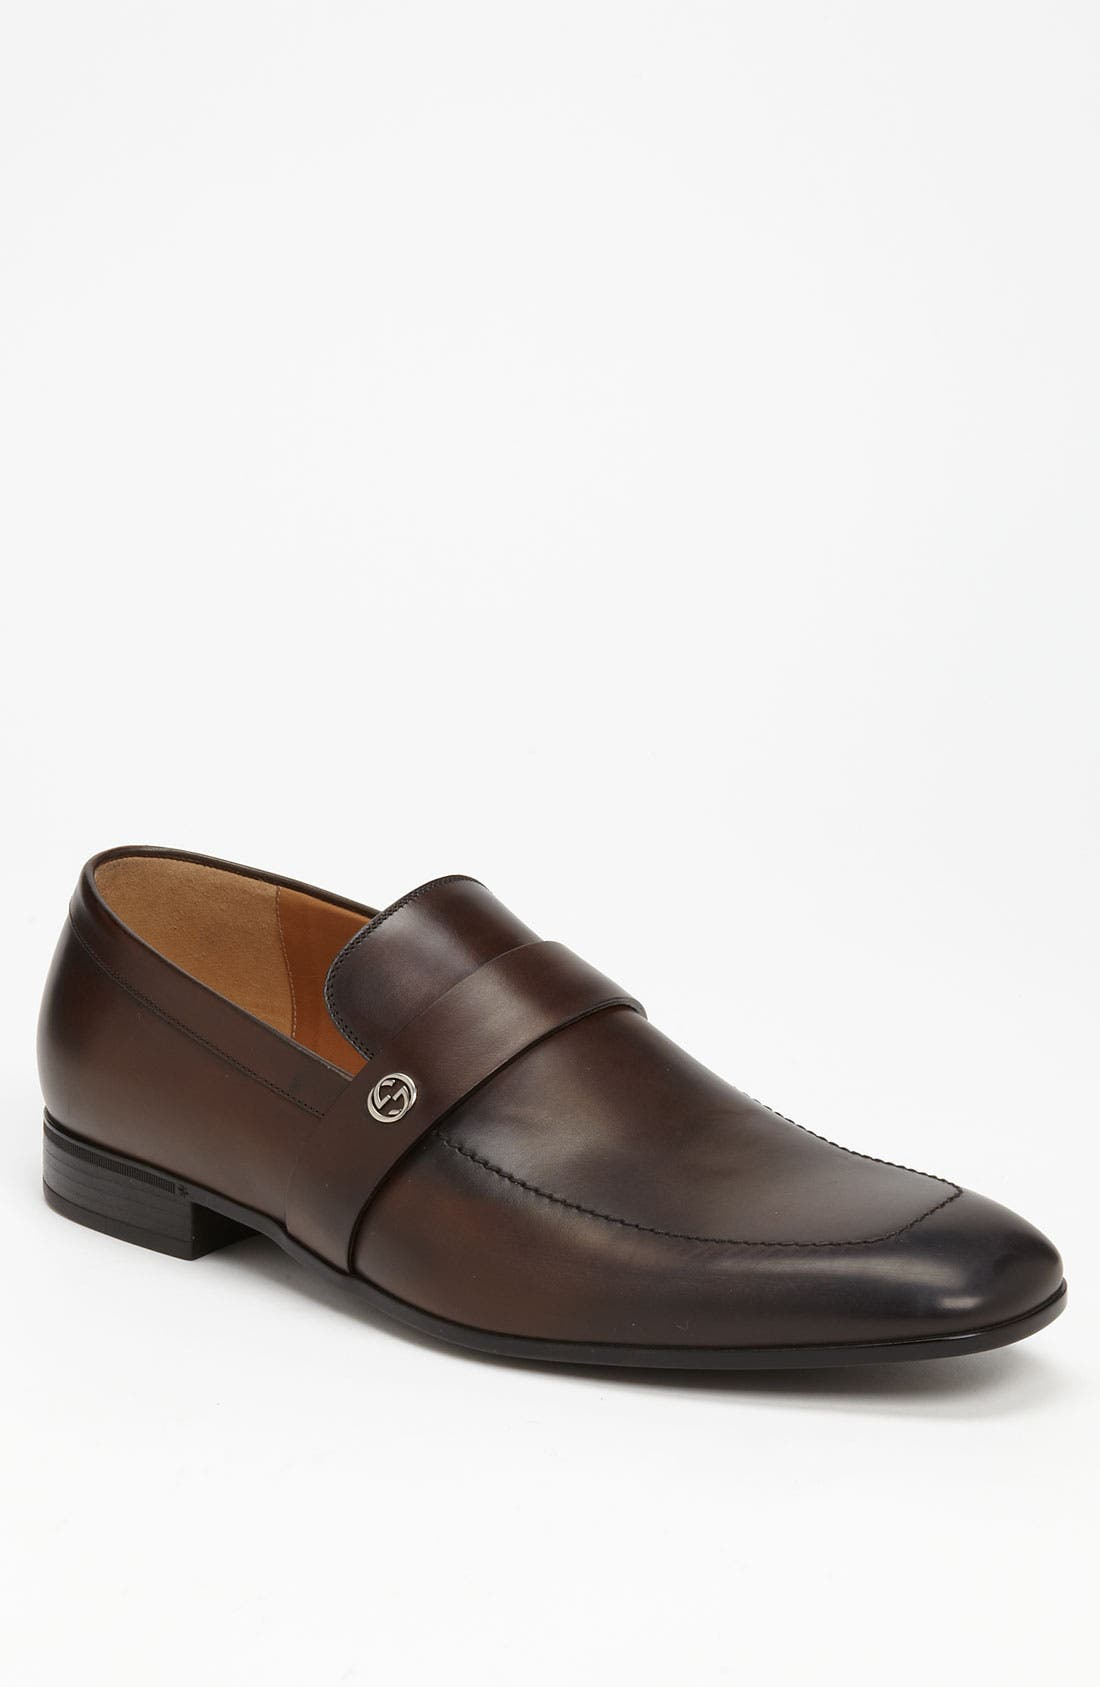 Alternate Image 1 Selected - Gucci 'Dynamics' Loafer